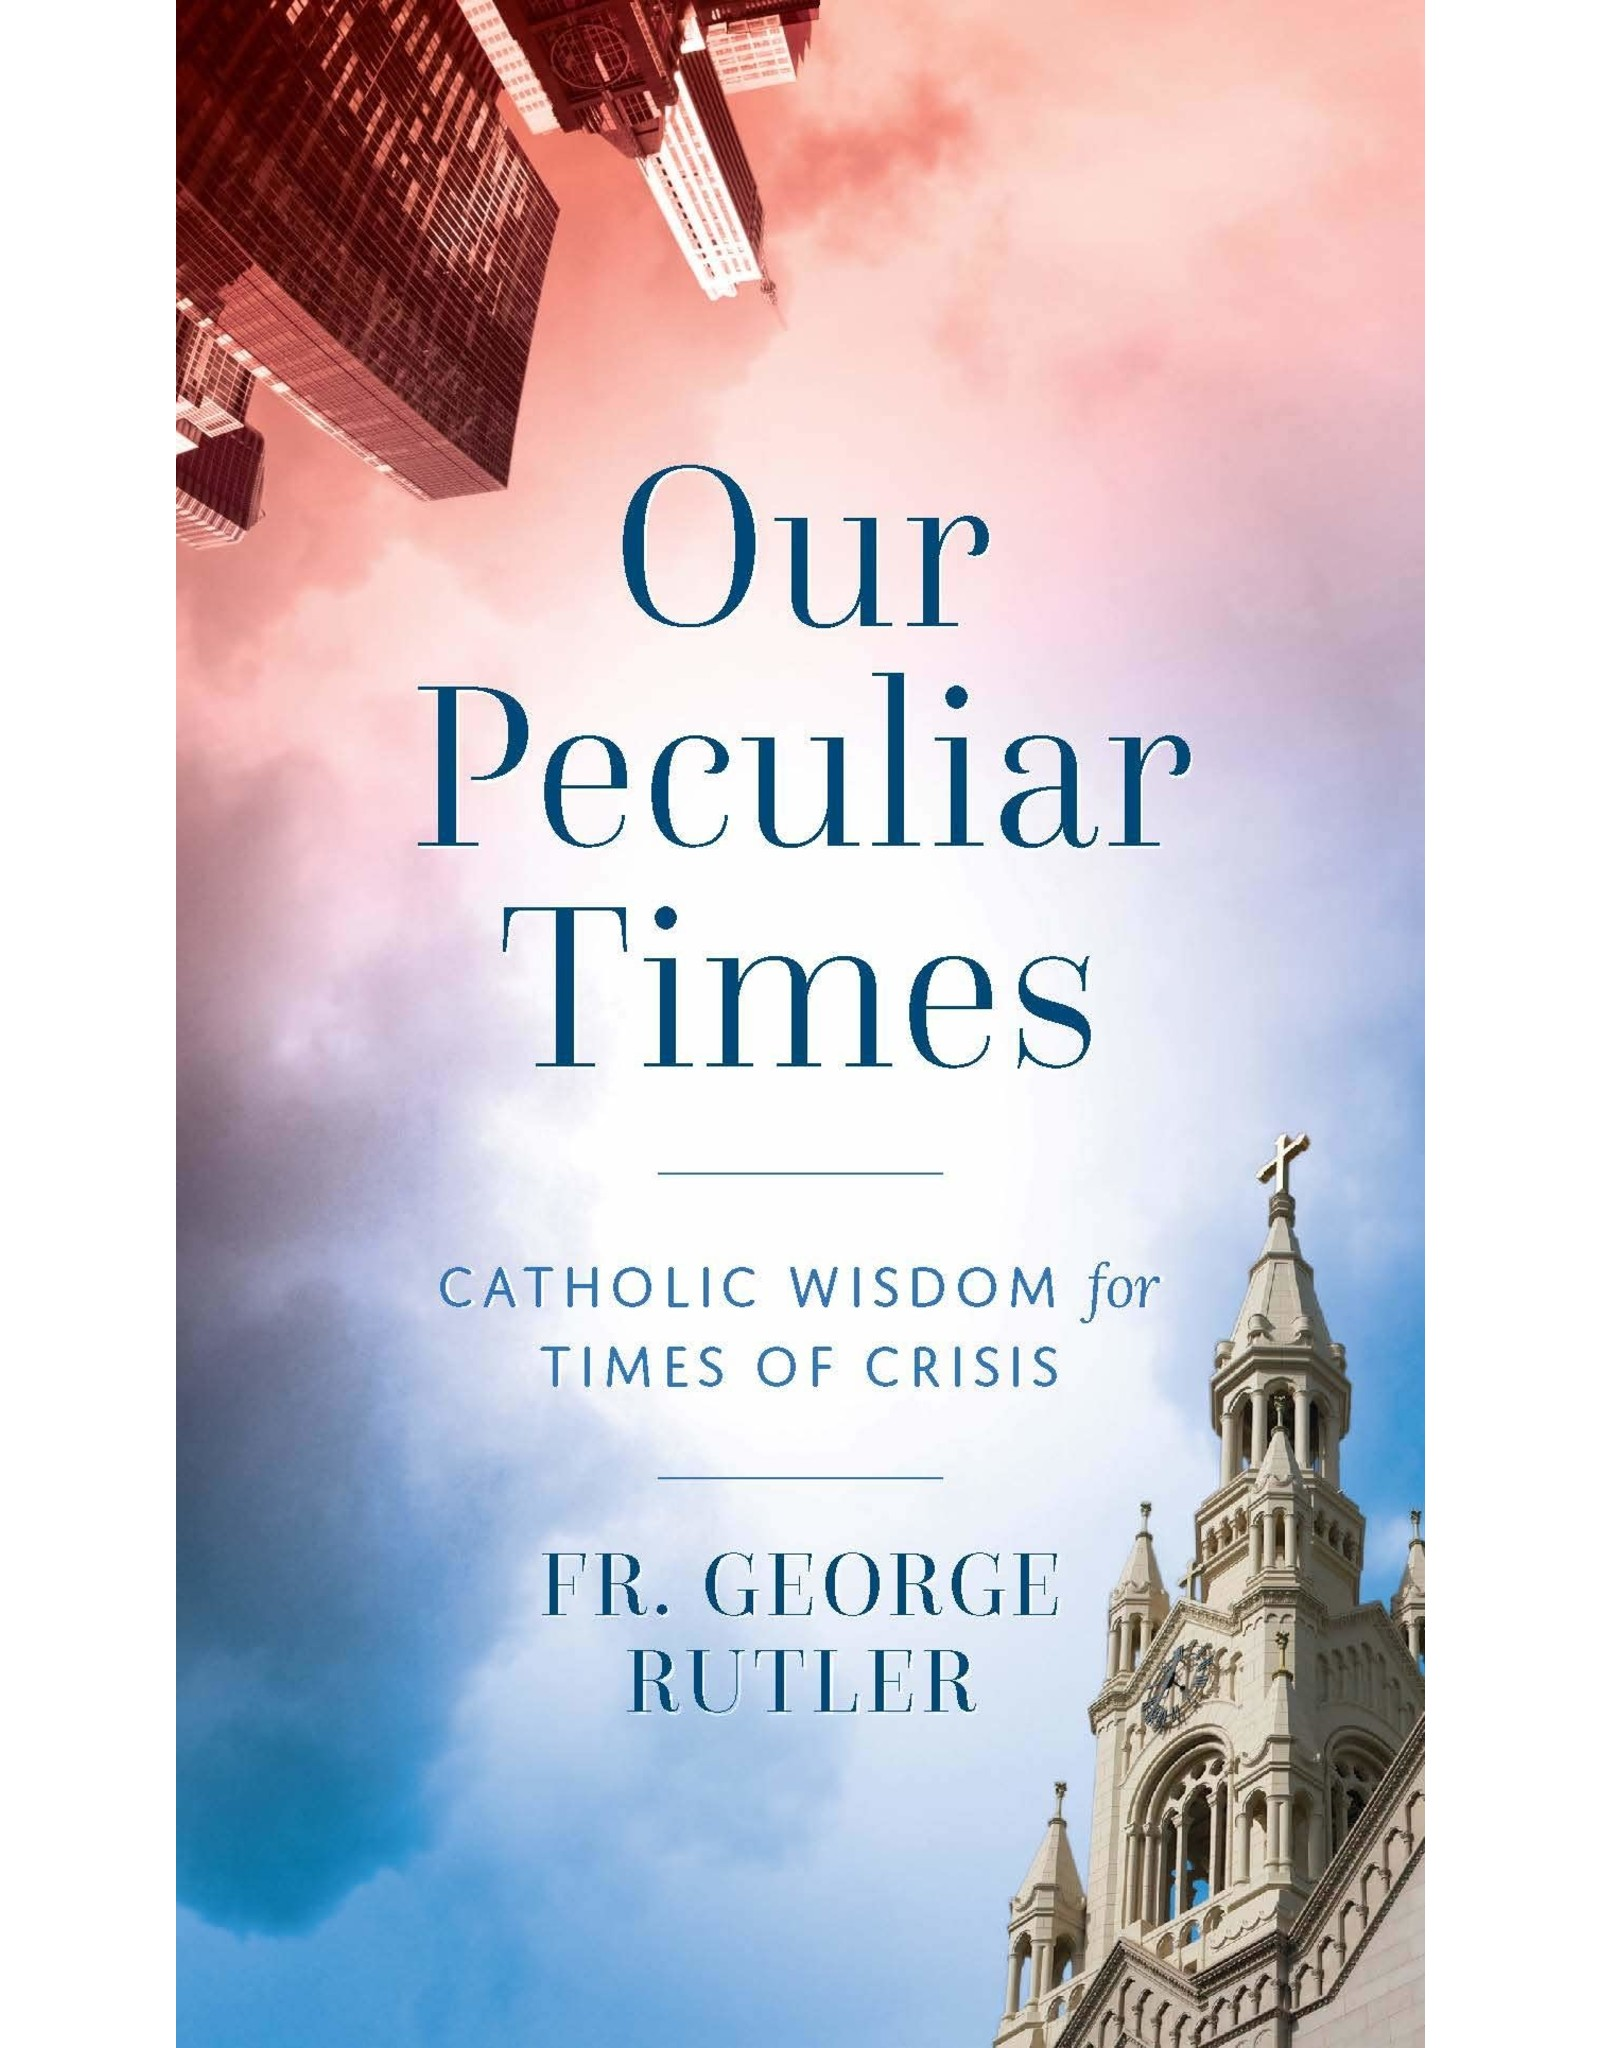 Our Peculiar Times: Catholic Wisdom for Times of Crisis